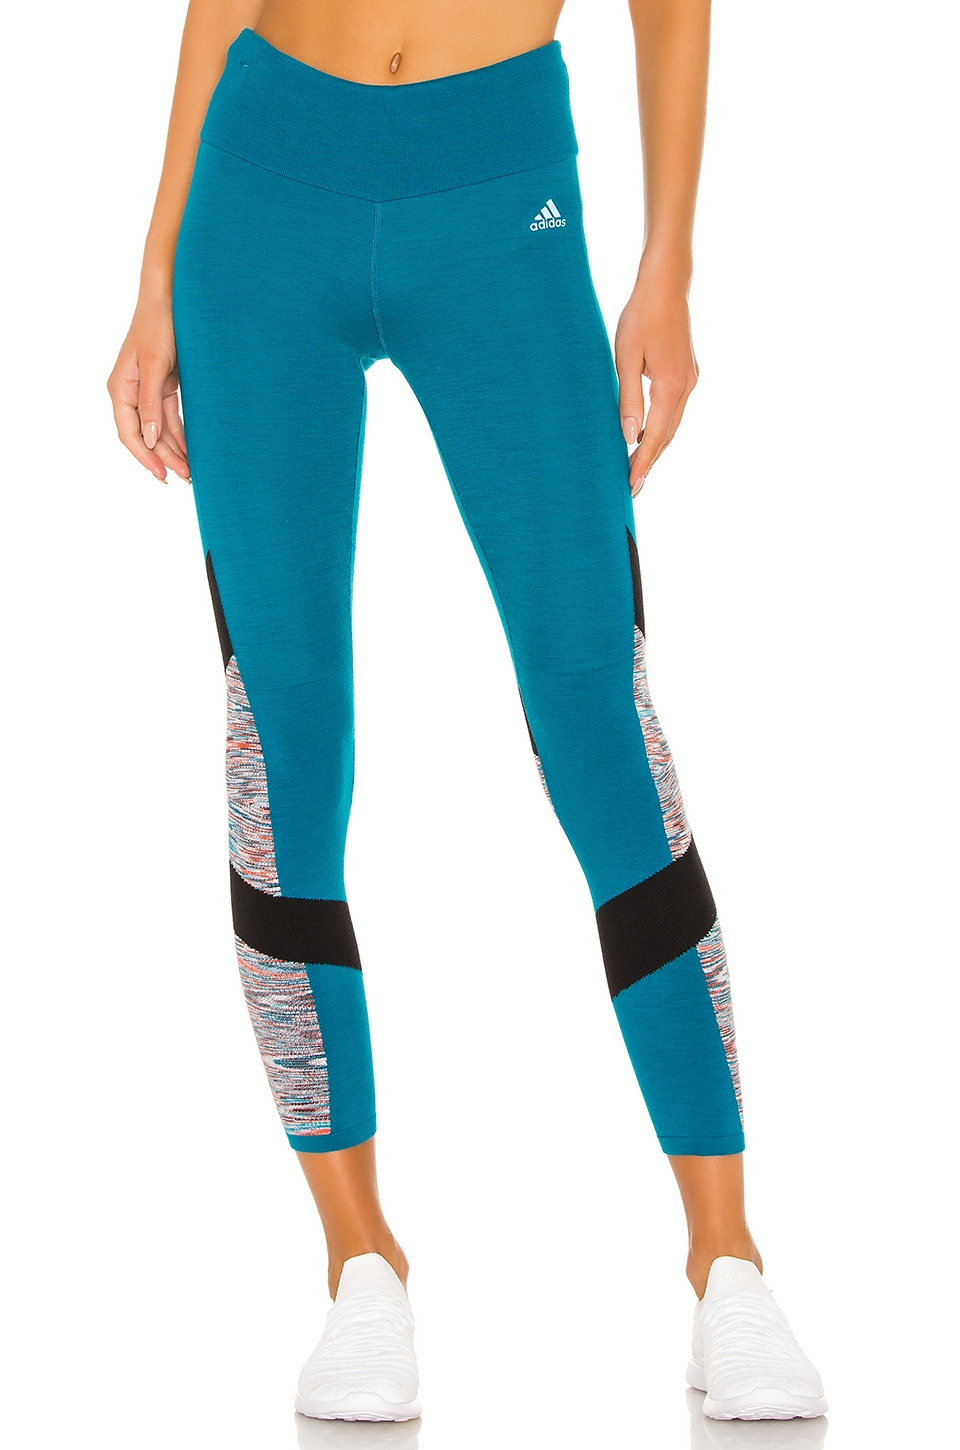 adidas by MISSONI How We Do Tight in Active Teal, Black & Active Orange